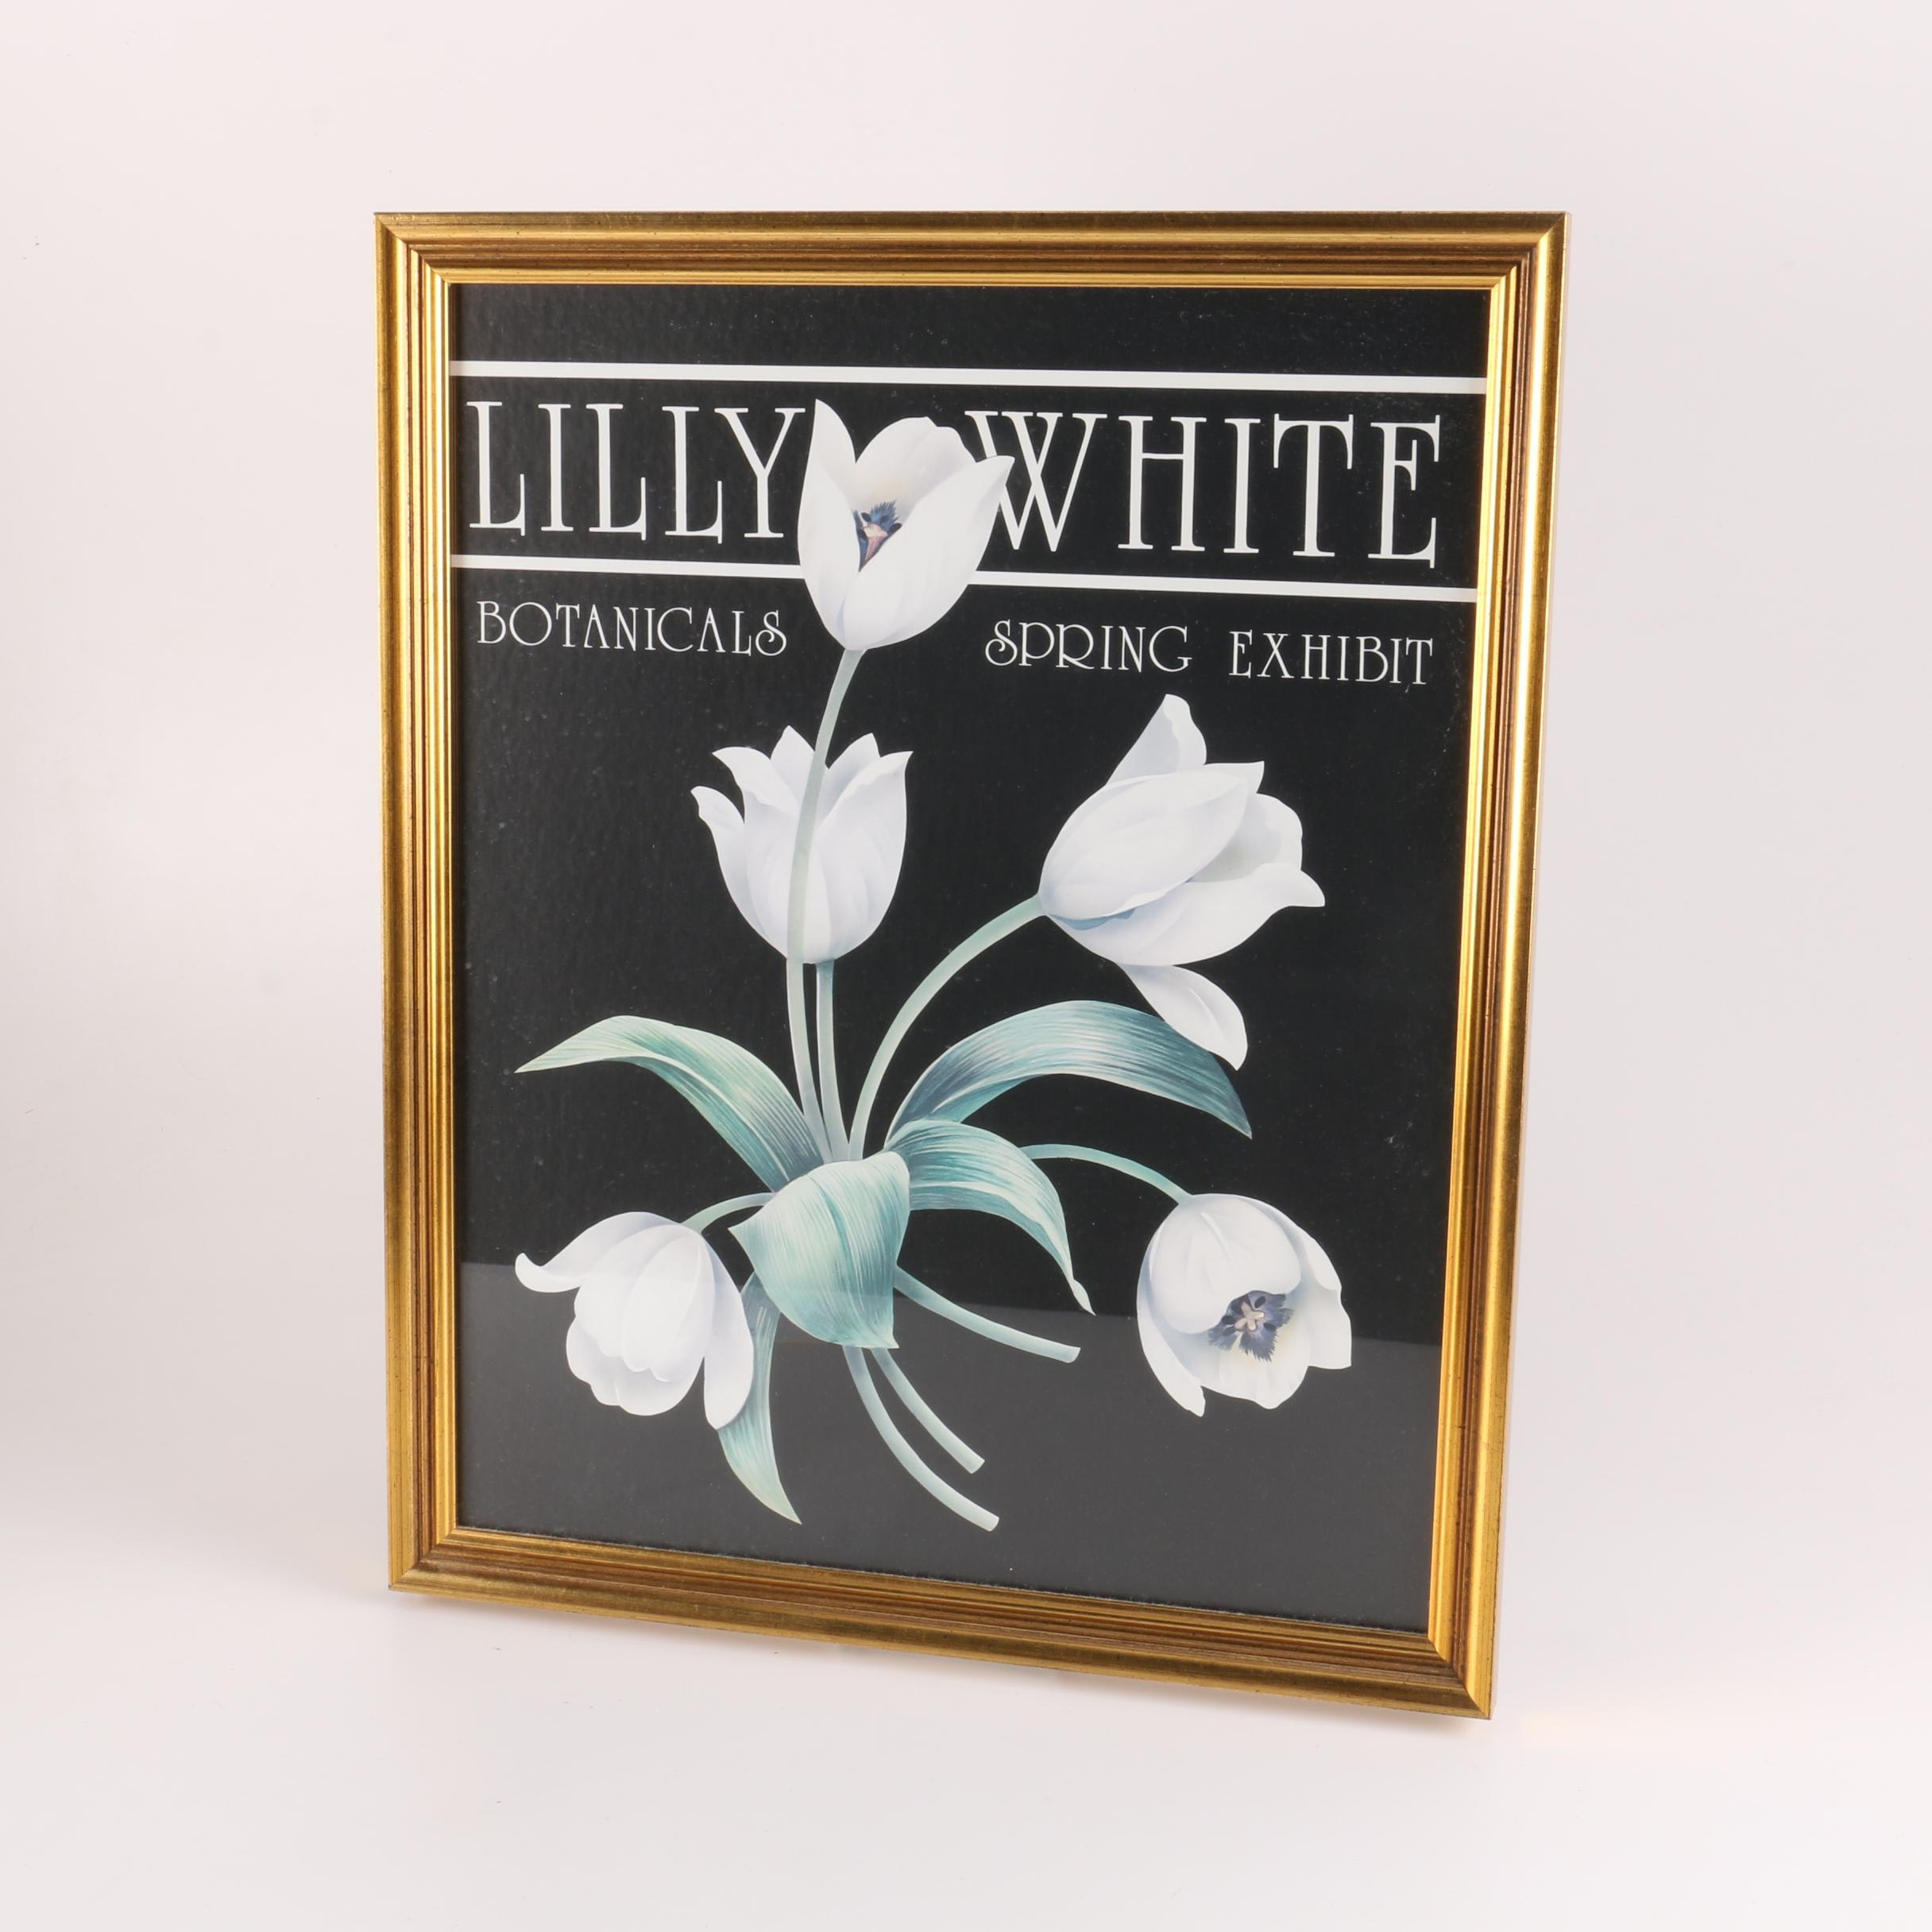 Offset Lithograph Poster for Lilly White Botanicals Spring Exhibit